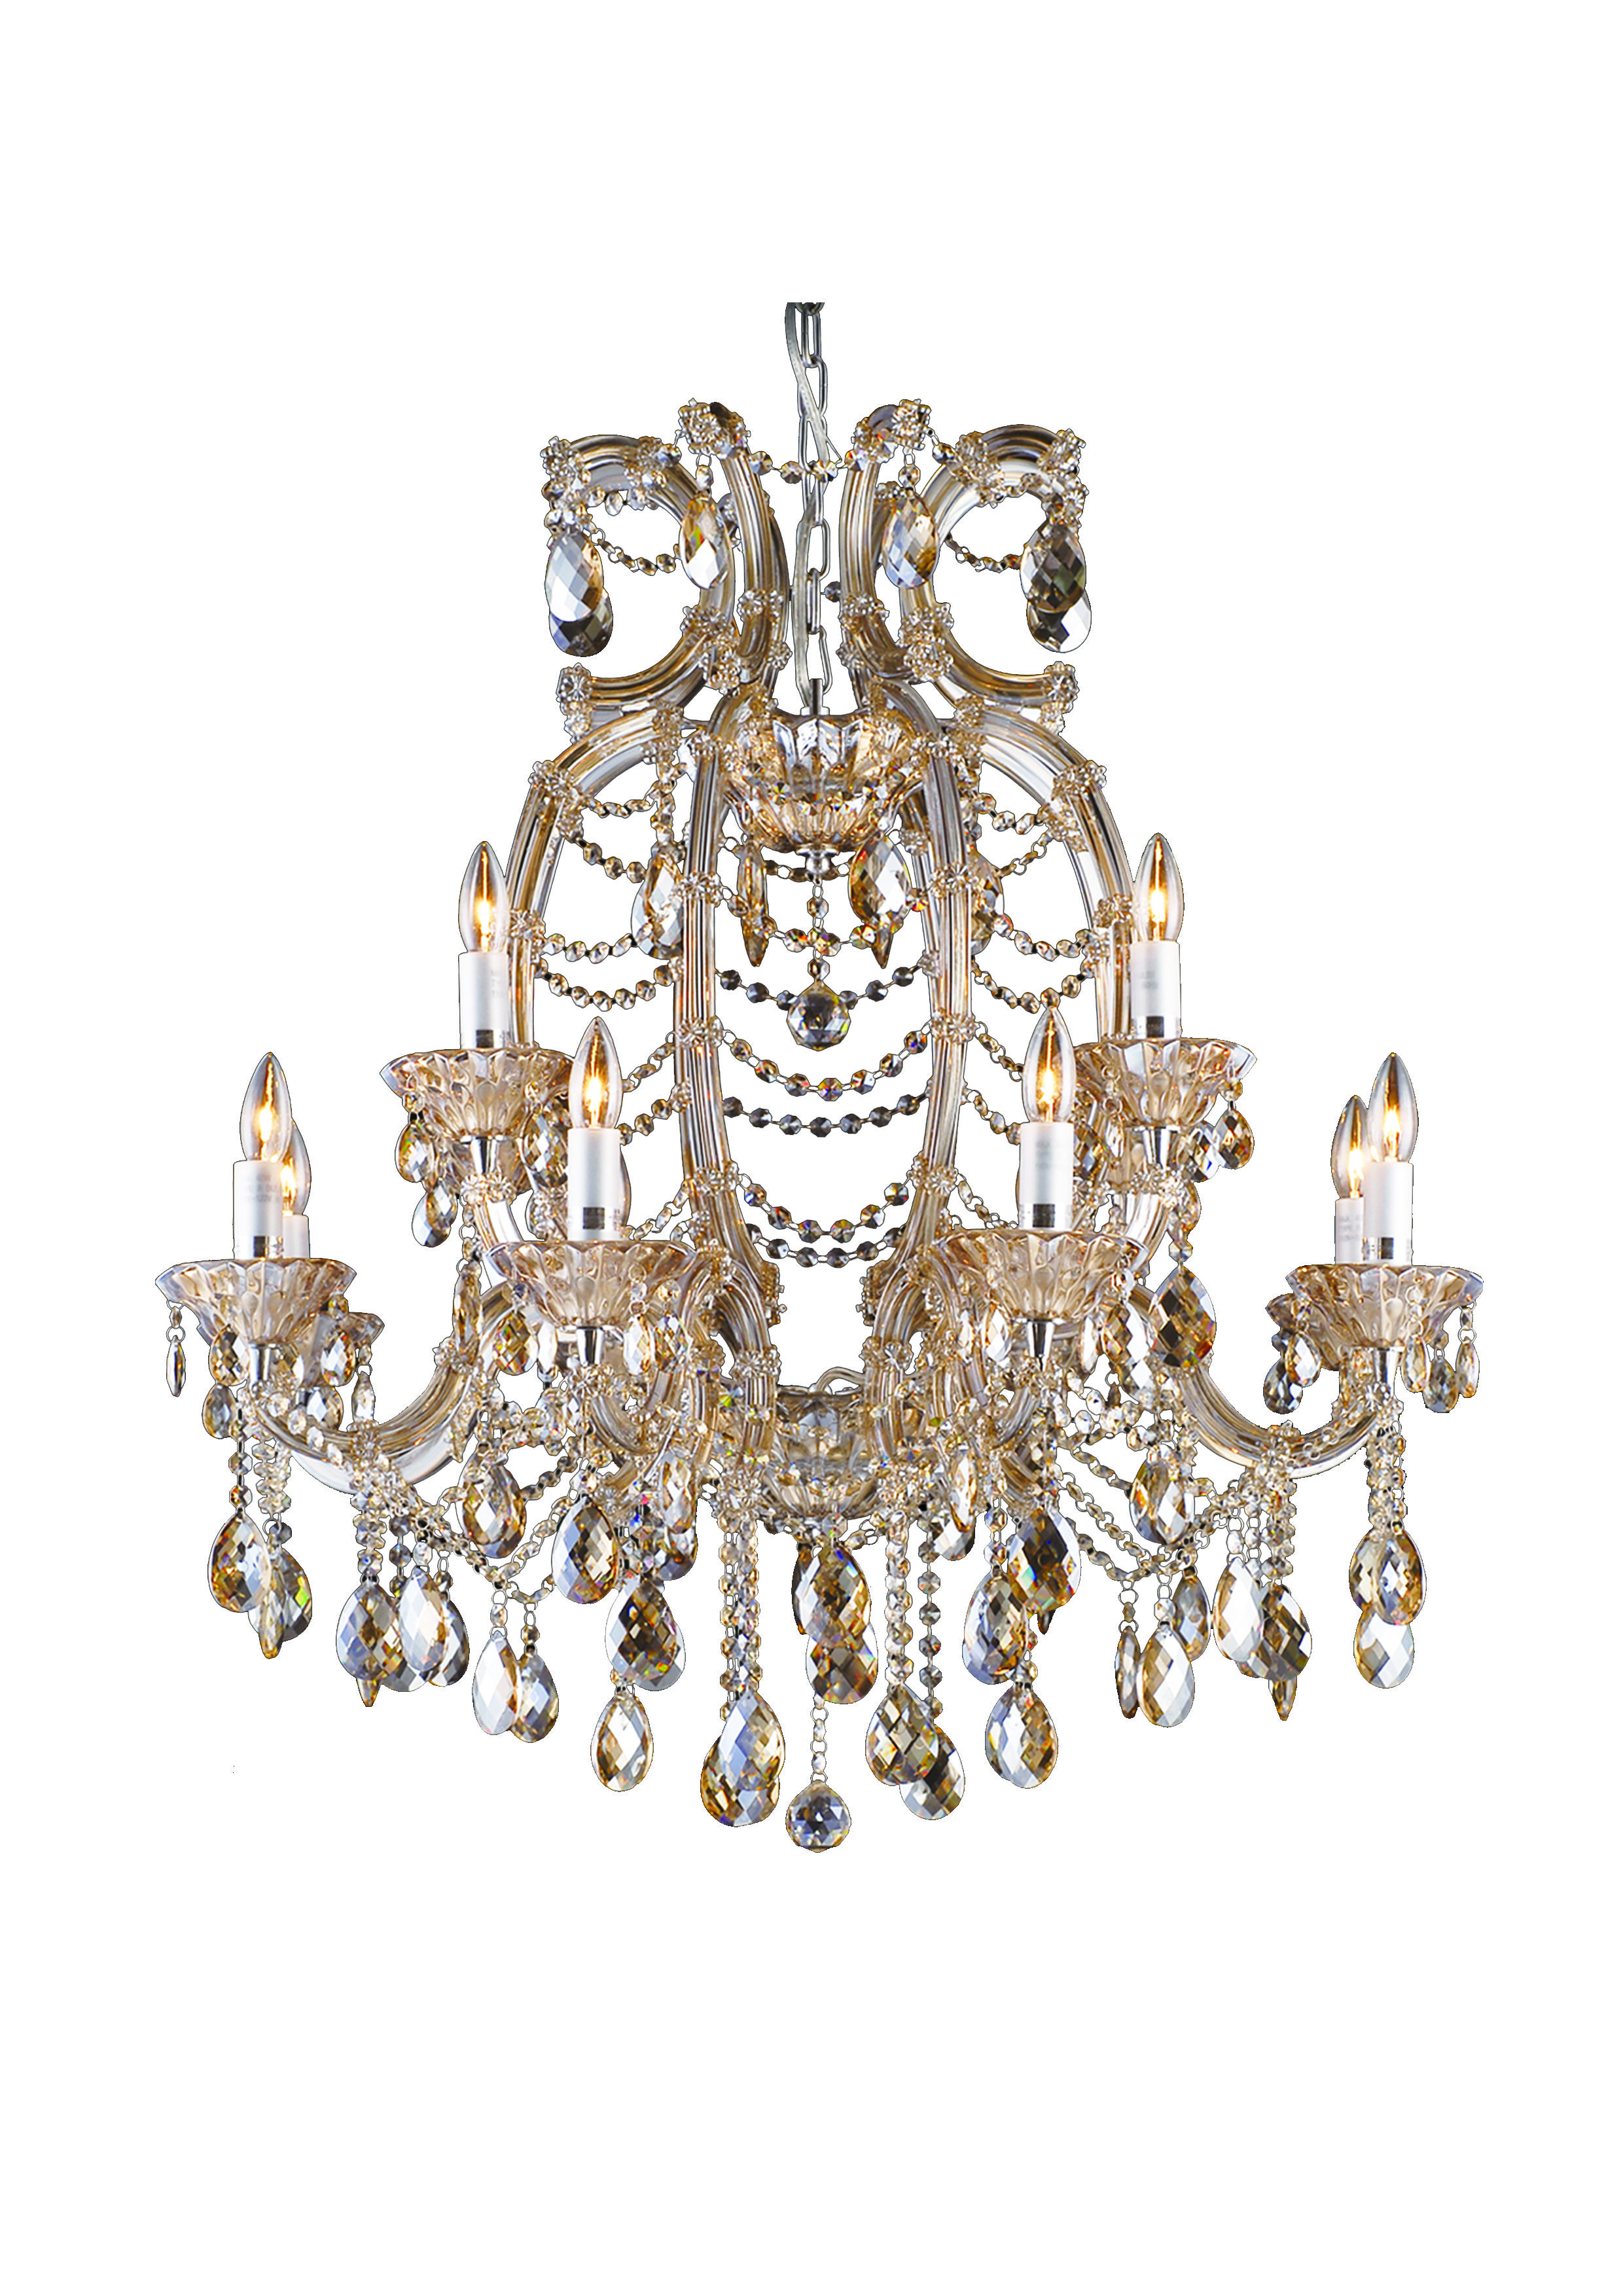 This breathtaking 12 light champagne colored crystal chandelier